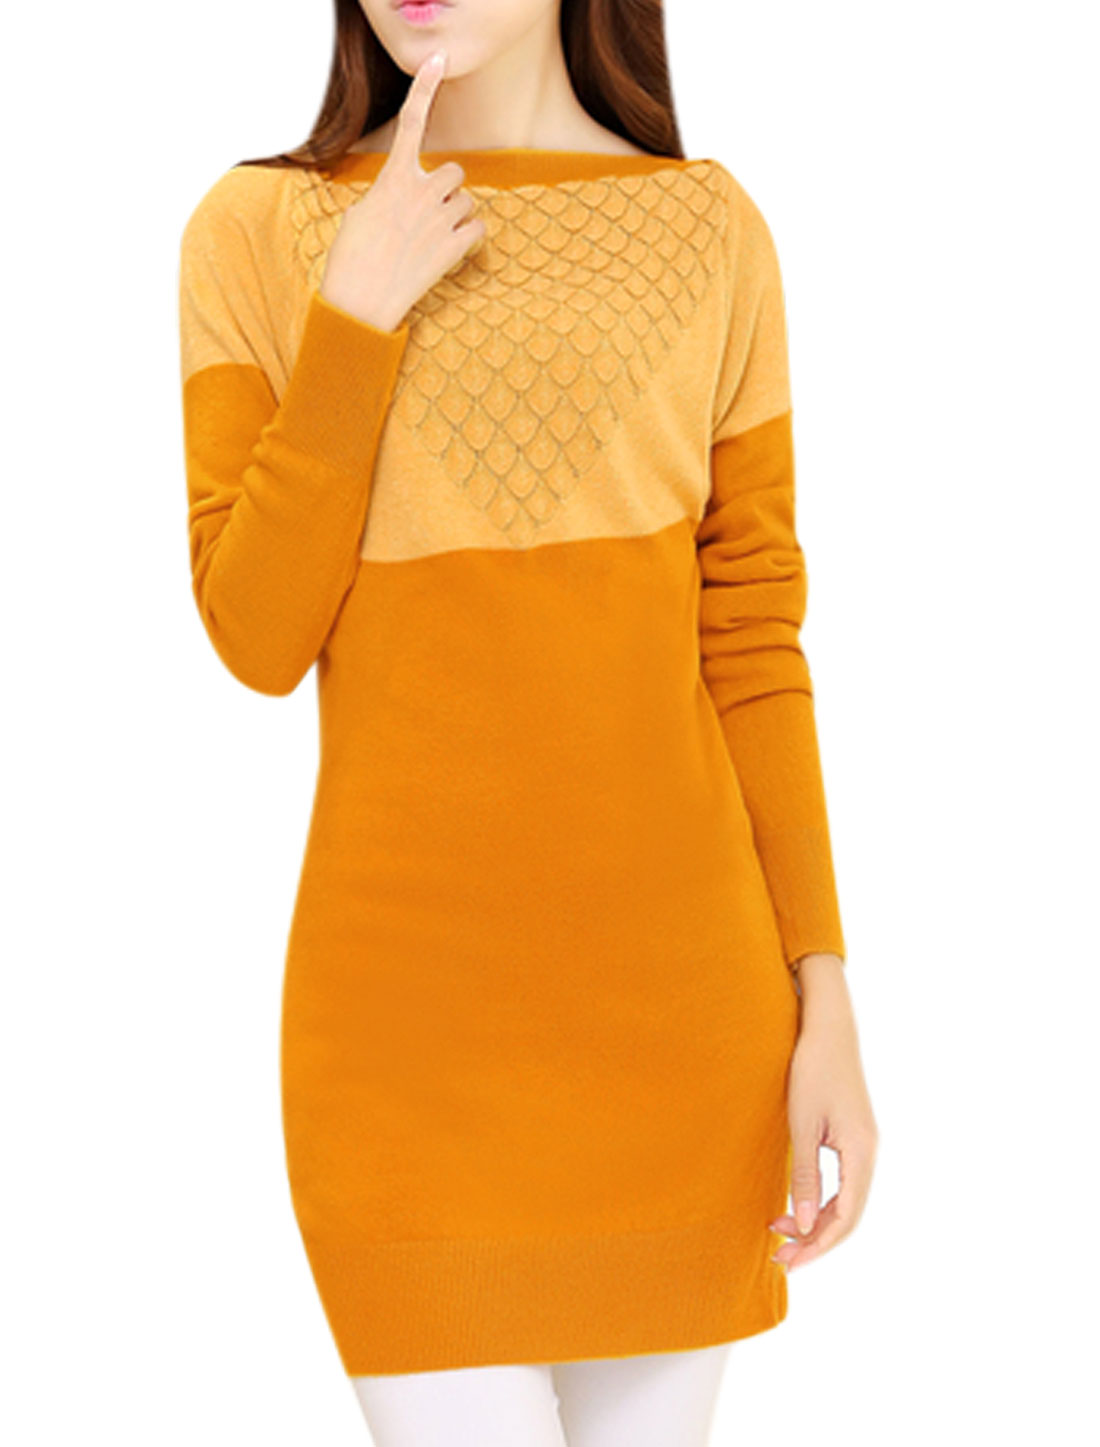 Ladies Waved Design Color Blocking Long Sleeve Ochre Knit Top S